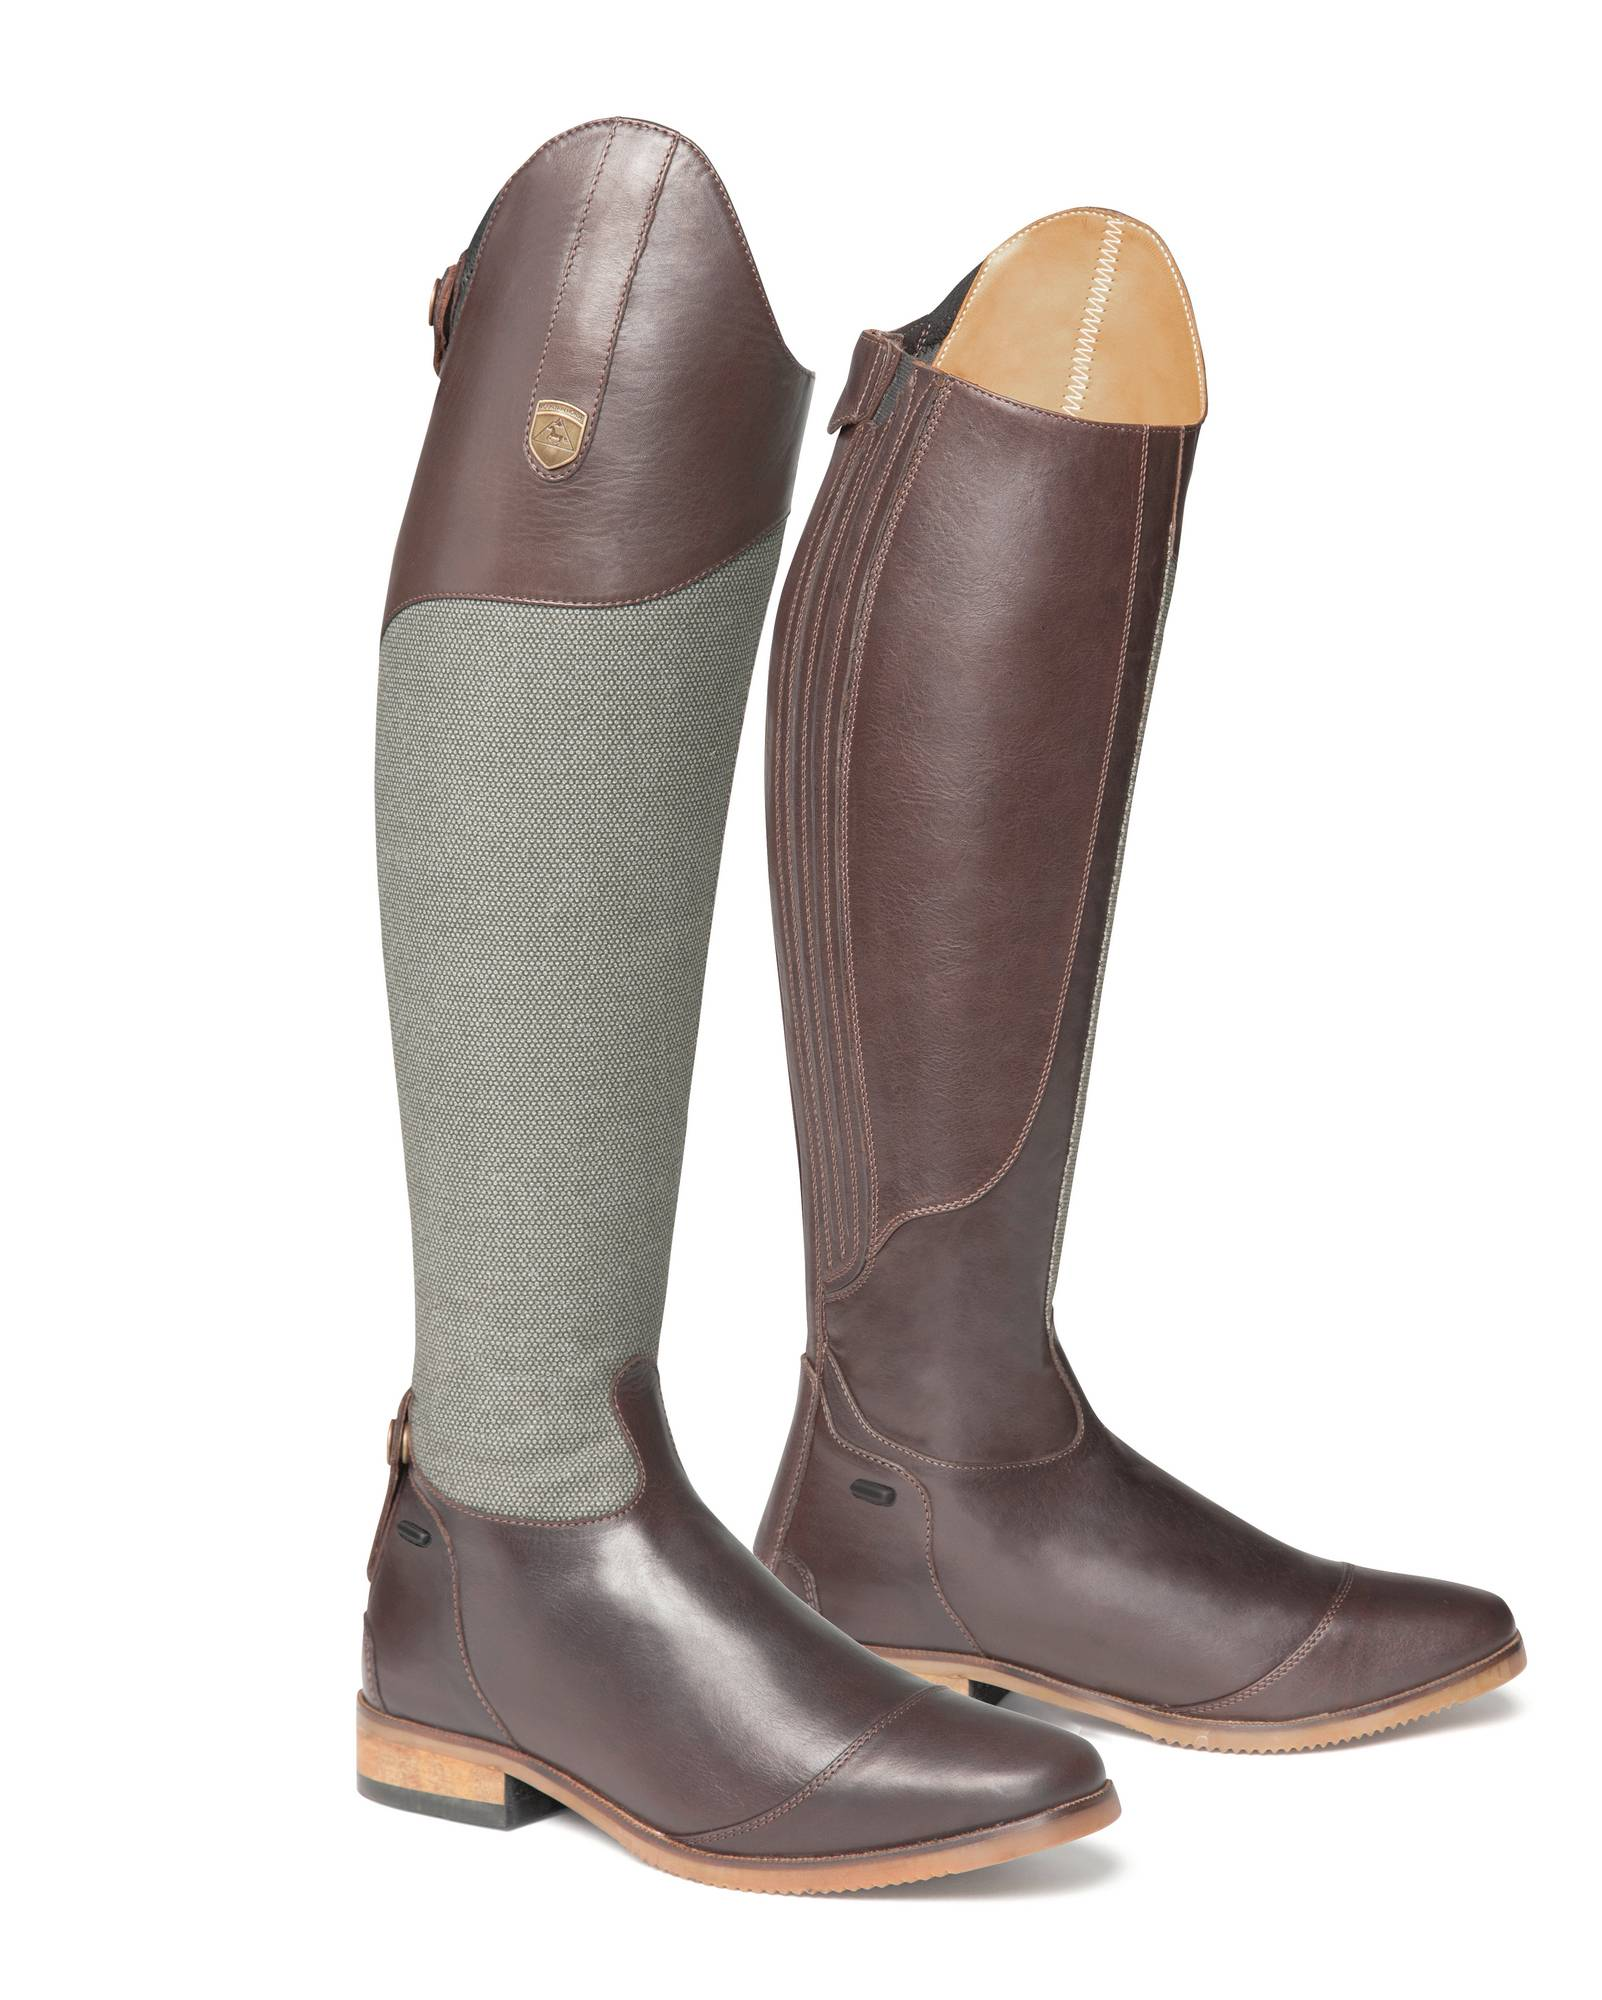 Mountain Horse Serengeti Classic Boots - Ladies